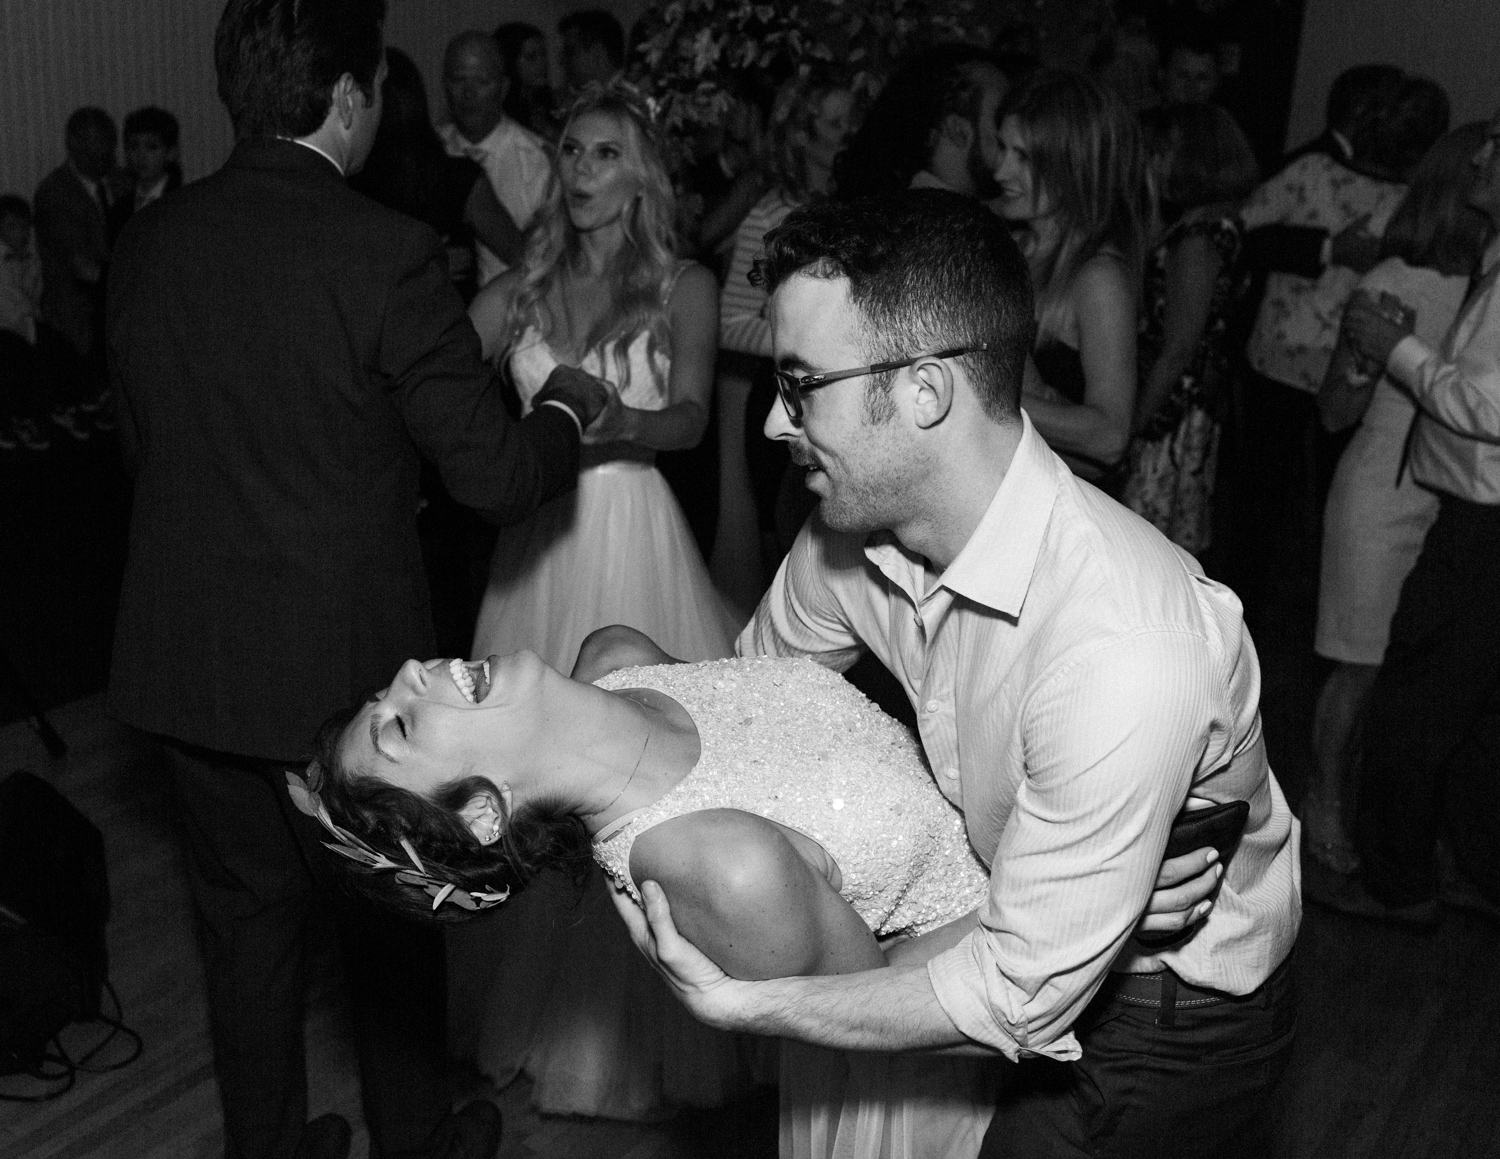 Jessica + Scott_Olivia_Ashton_Photography-37-62.jpg